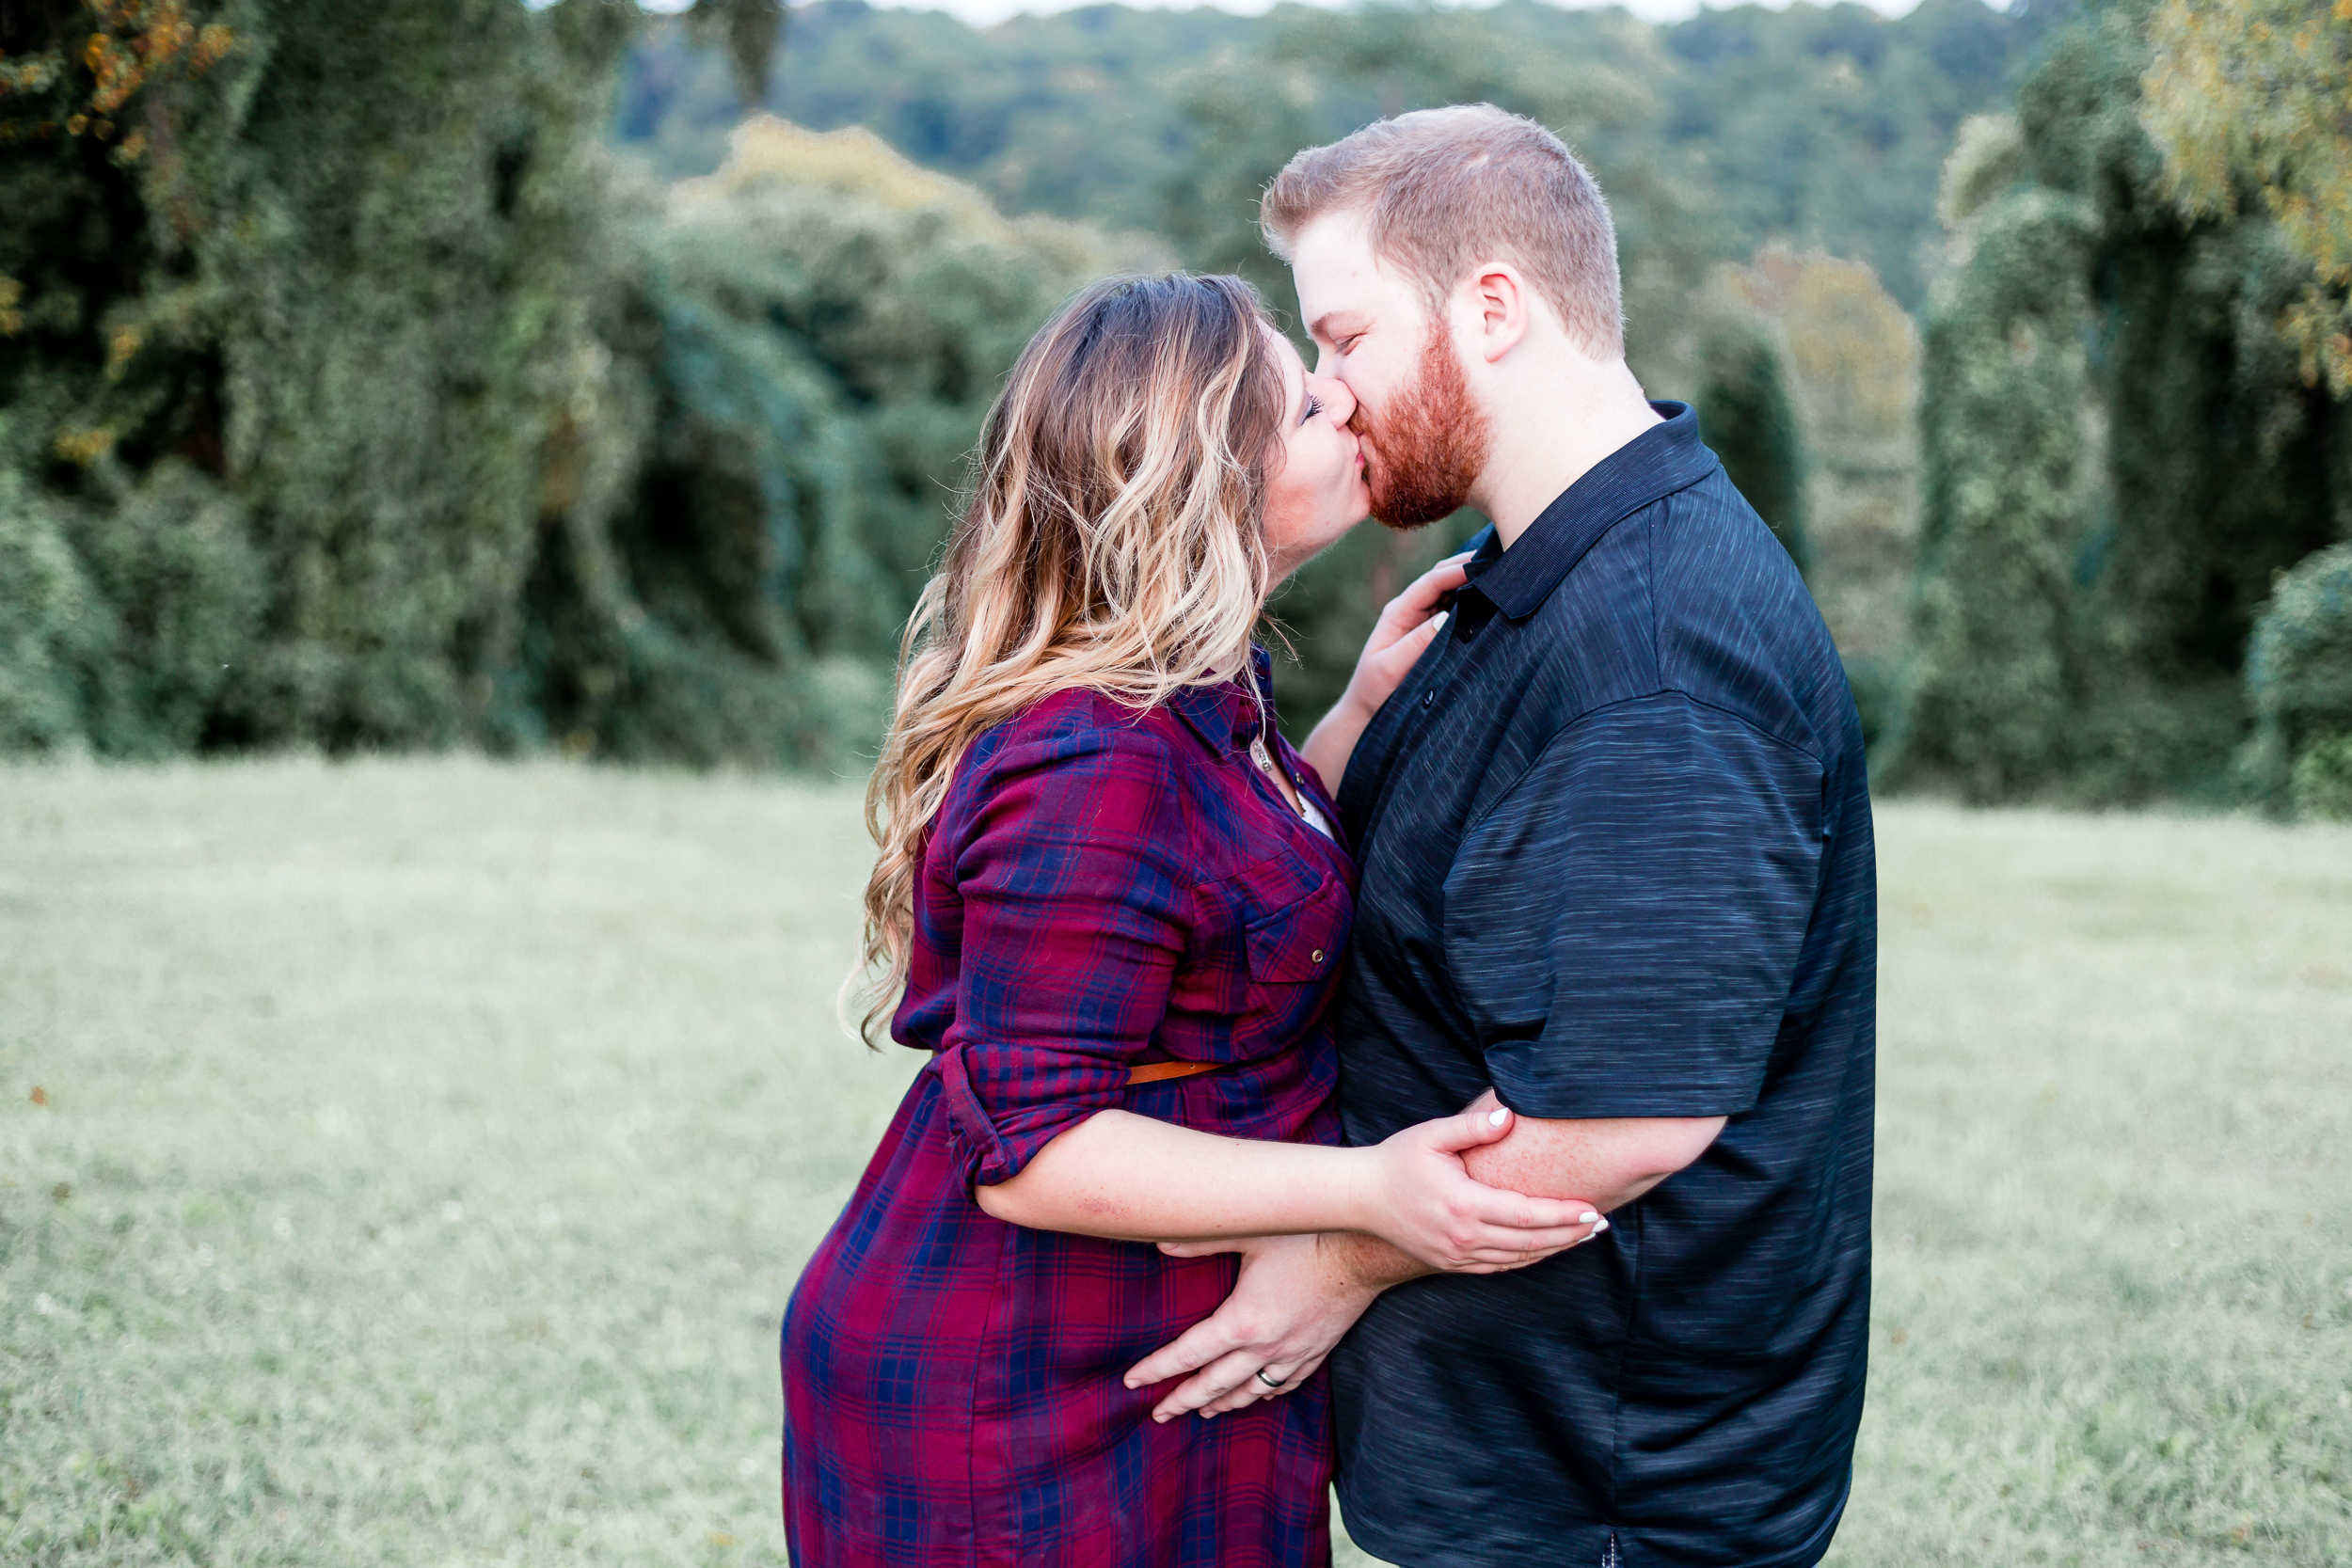 mmw-lynchburg-maternity-photo-session-31.jpg